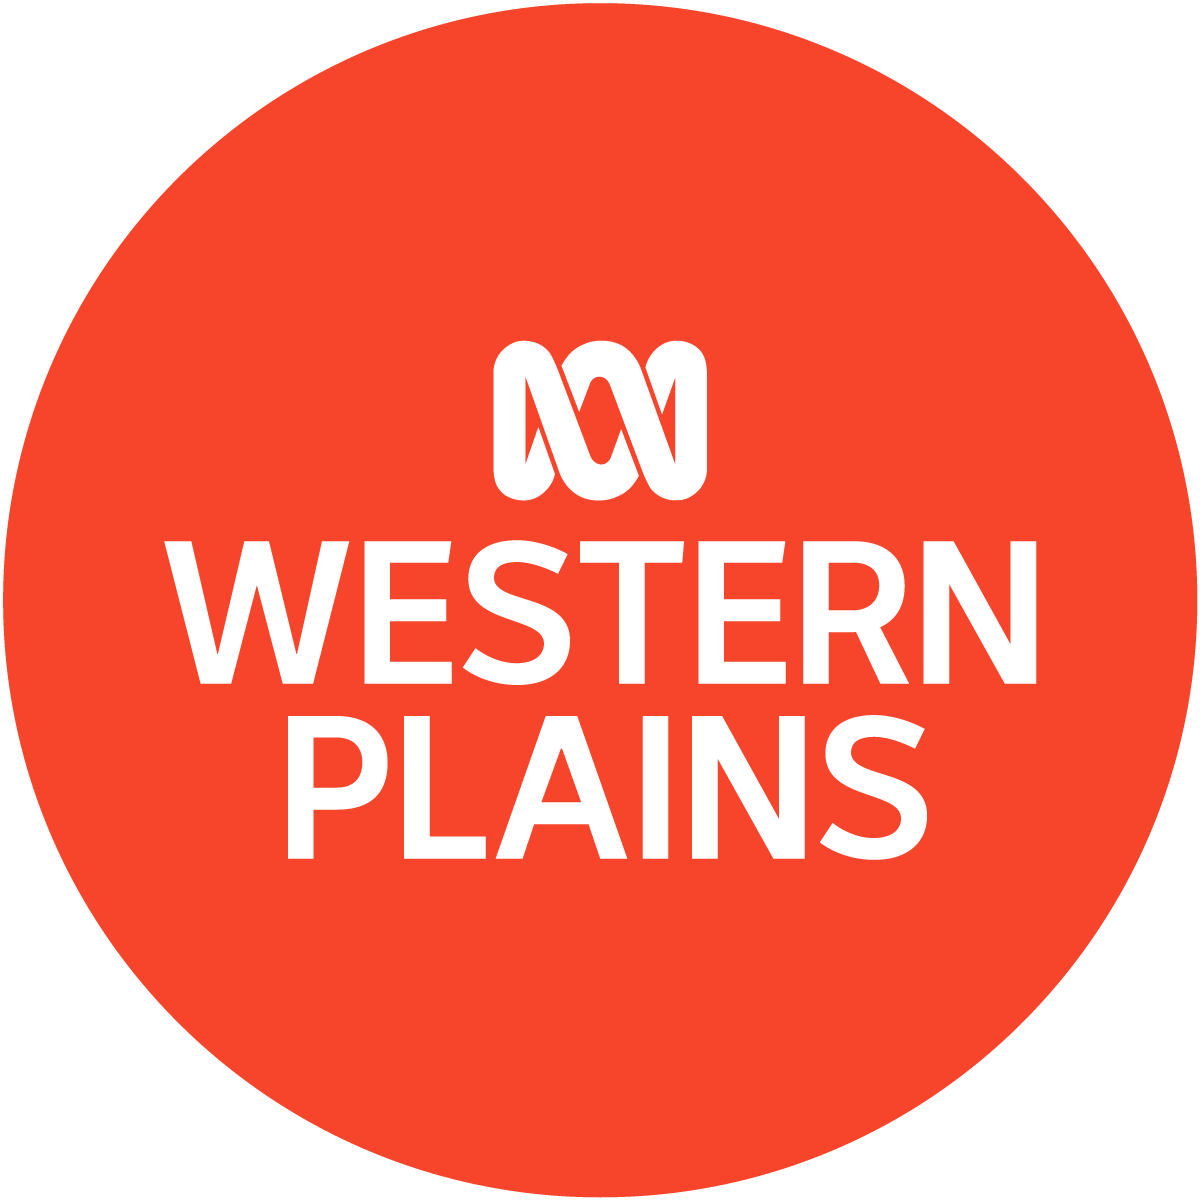 NSW_04-WesternPlains_red_1200px (1).png